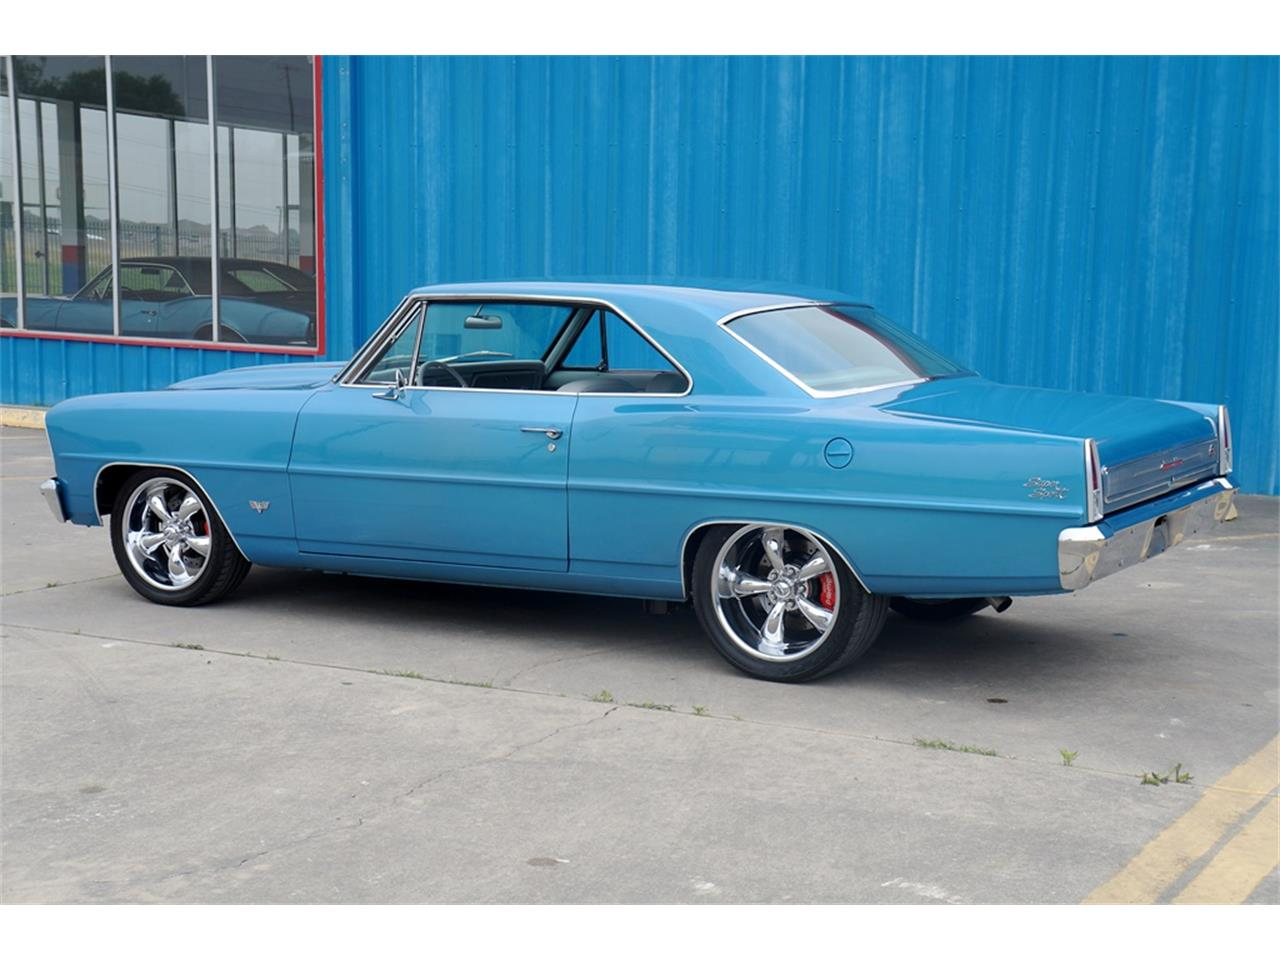 Large Picture of 1966 Nova - $64,900.00 Offered by A&E Classic Cars - PWOL